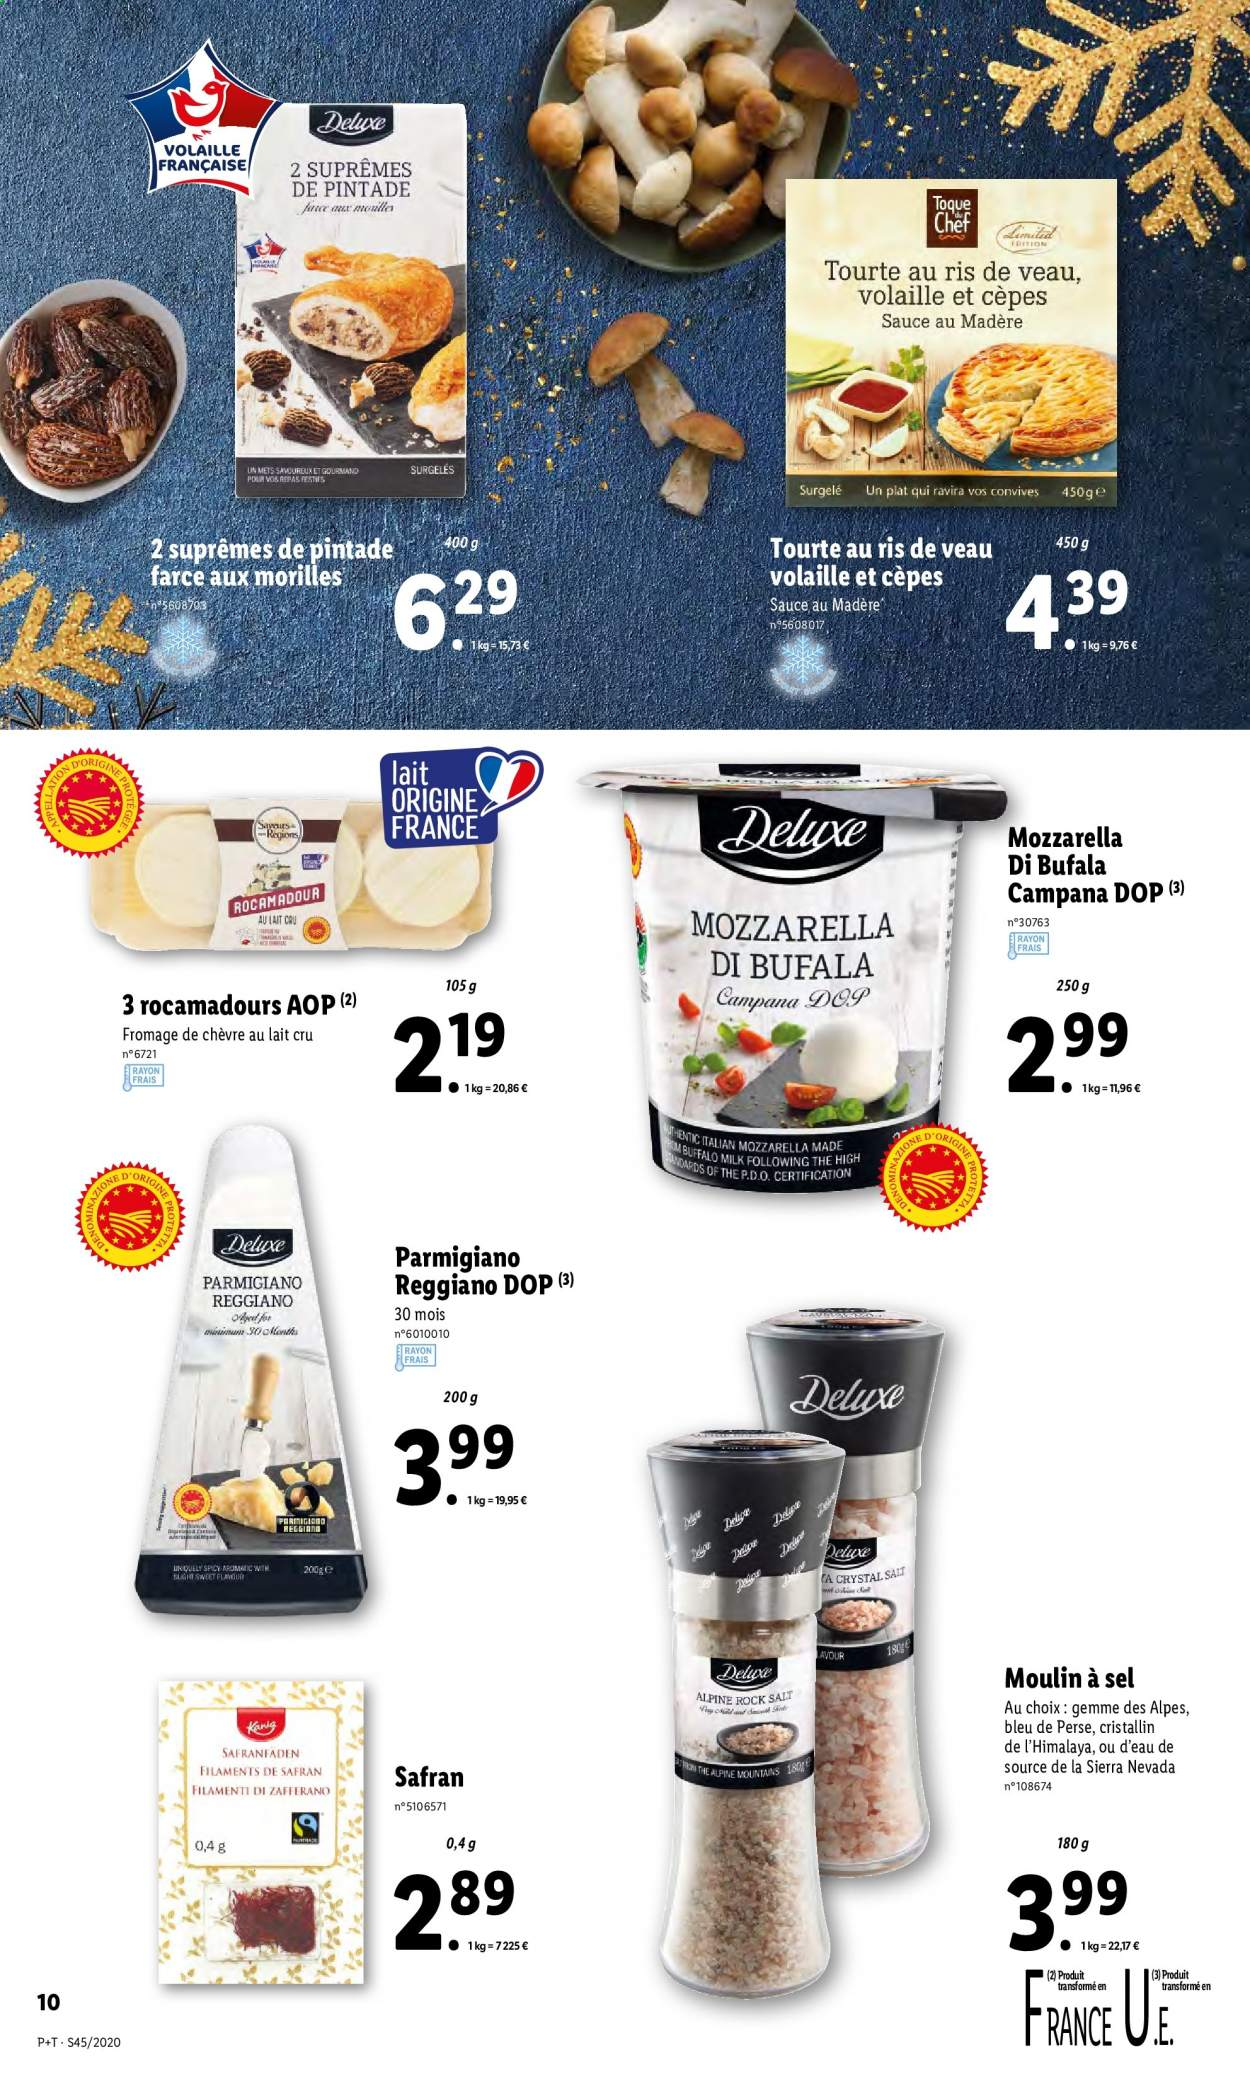 Catalogue Lidl - 04.11.2020 - 10.11.2020. Page 10.